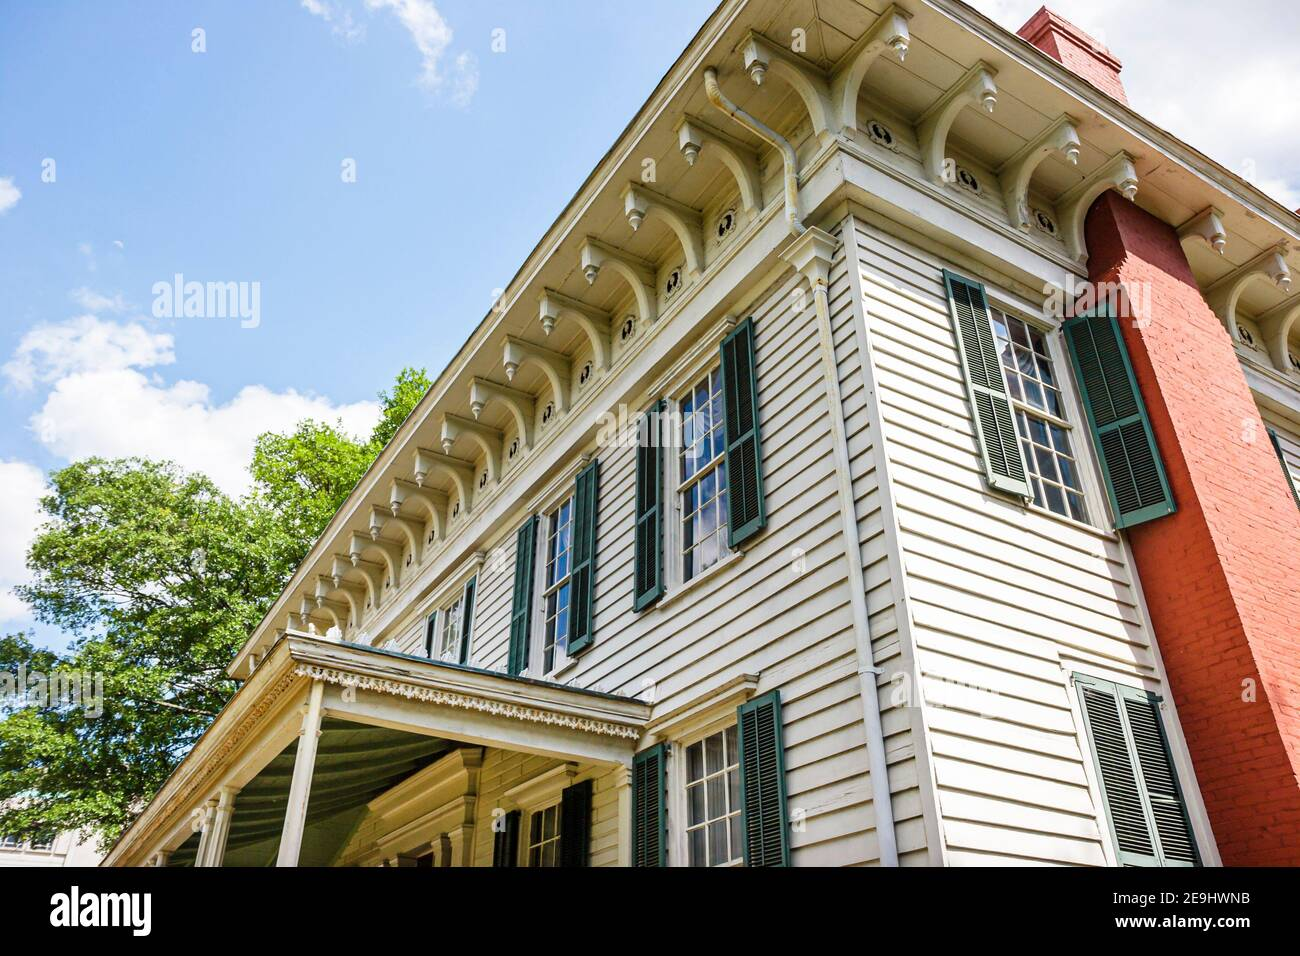 Alabama Montgomery First White House of the Confederacy,Civil War 1835 Italianate style outside exterior front entrance, Stock Photo